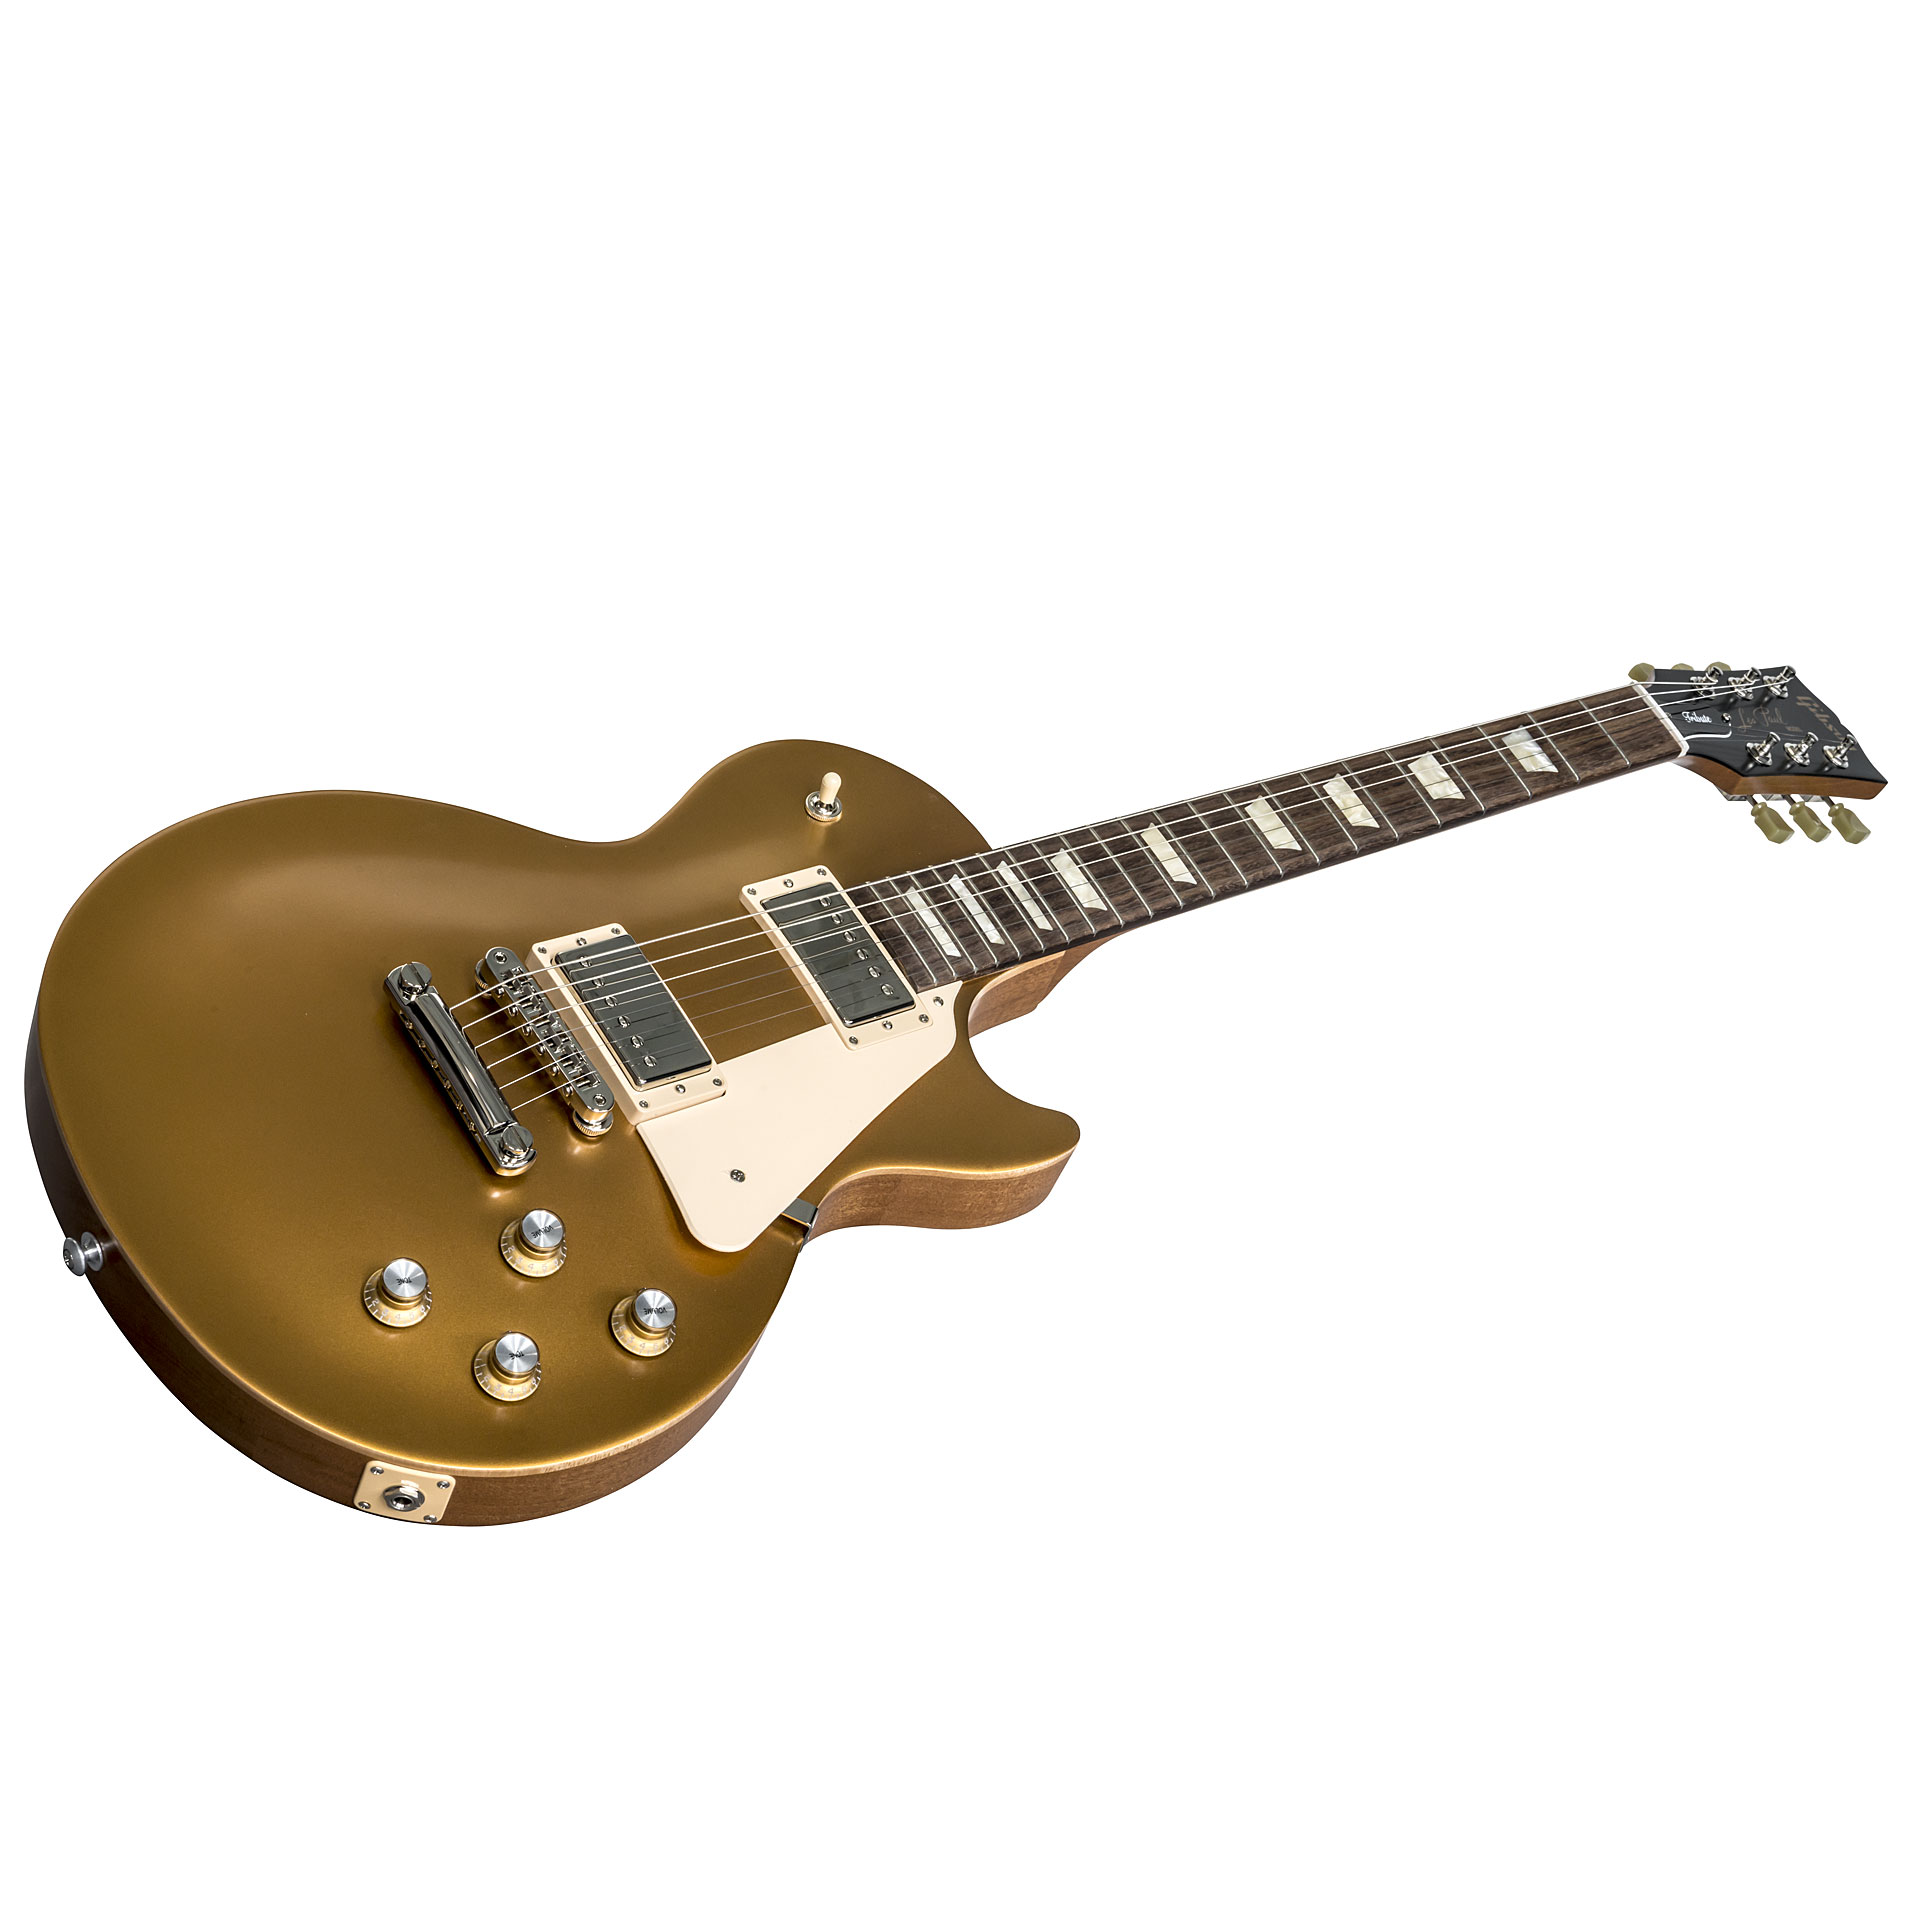 gibson les paul tribute 2018 satin gold elektrische gitaar. Black Bedroom Furniture Sets. Home Design Ideas